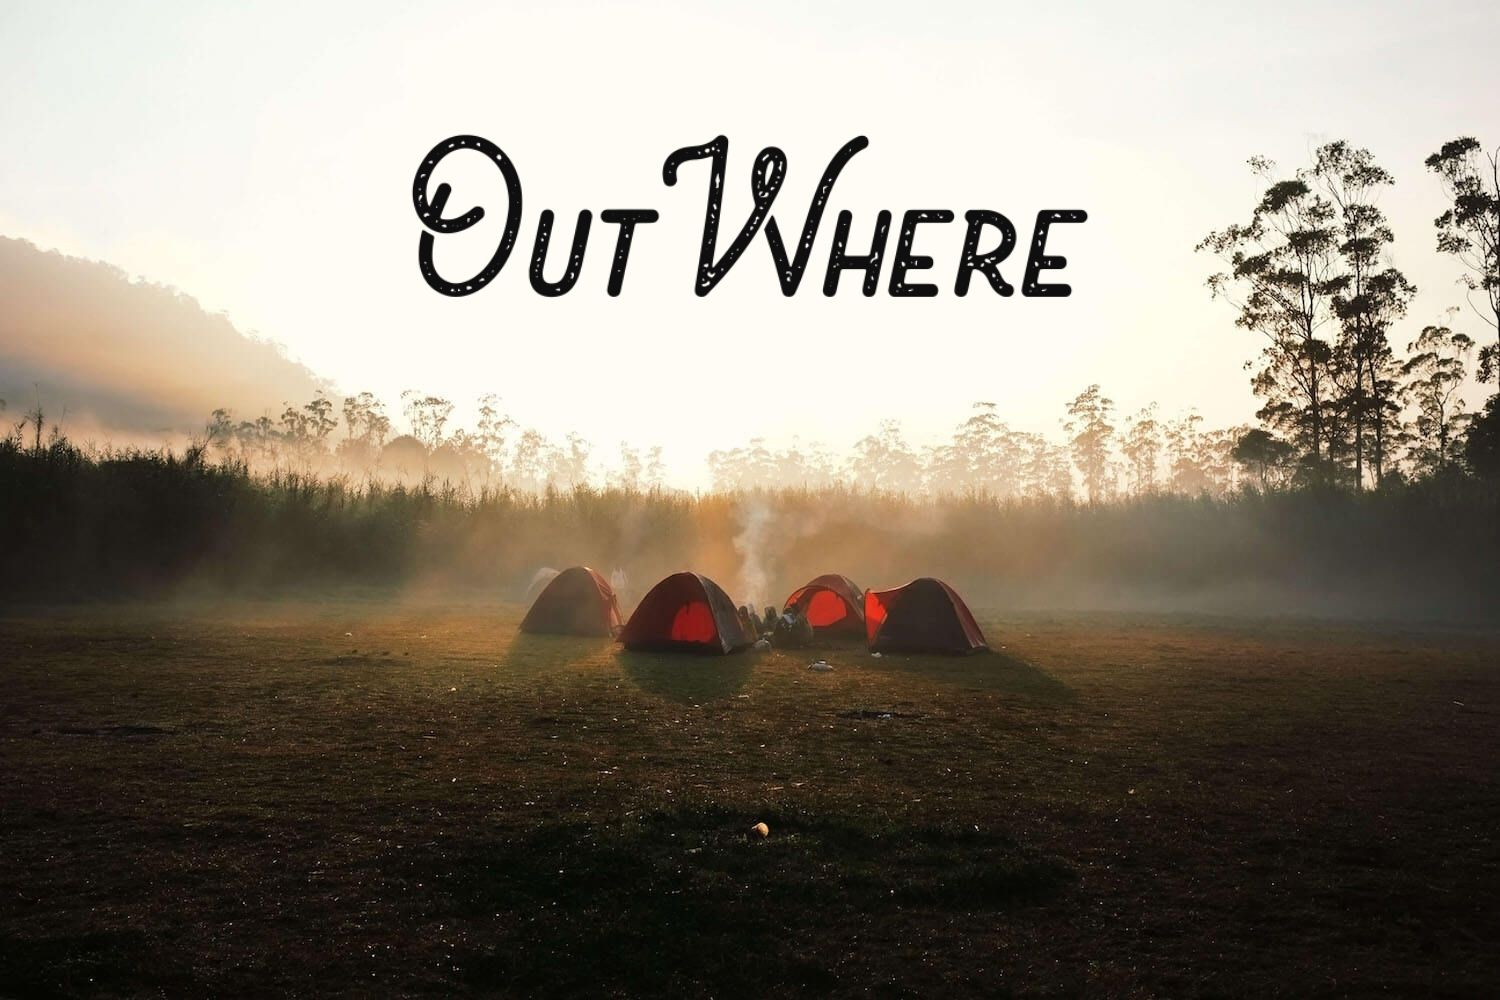 OutWhere project cover - people camping in a clearing